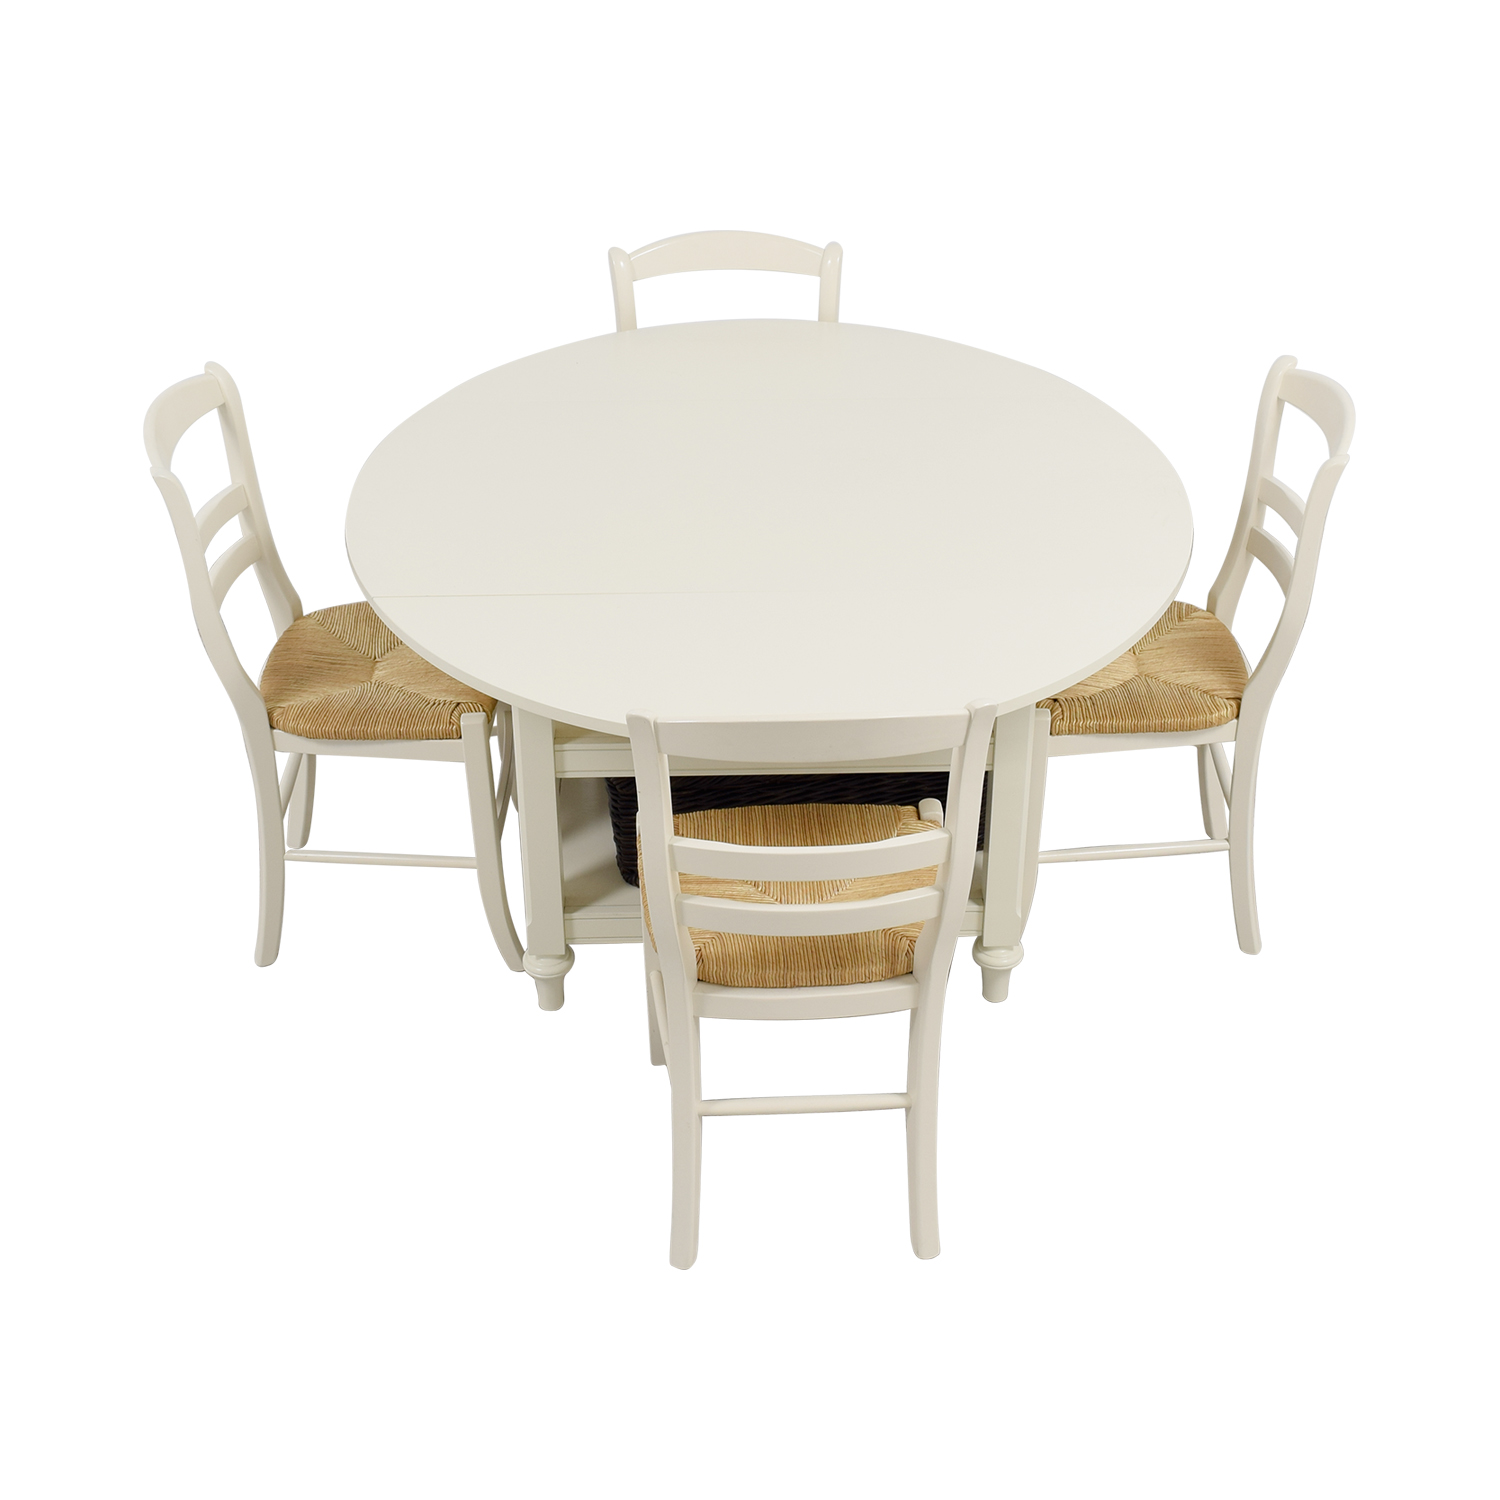 ... Pottery Barn Shayna Drop Leaf Table With Chairs Pottery Barn ...